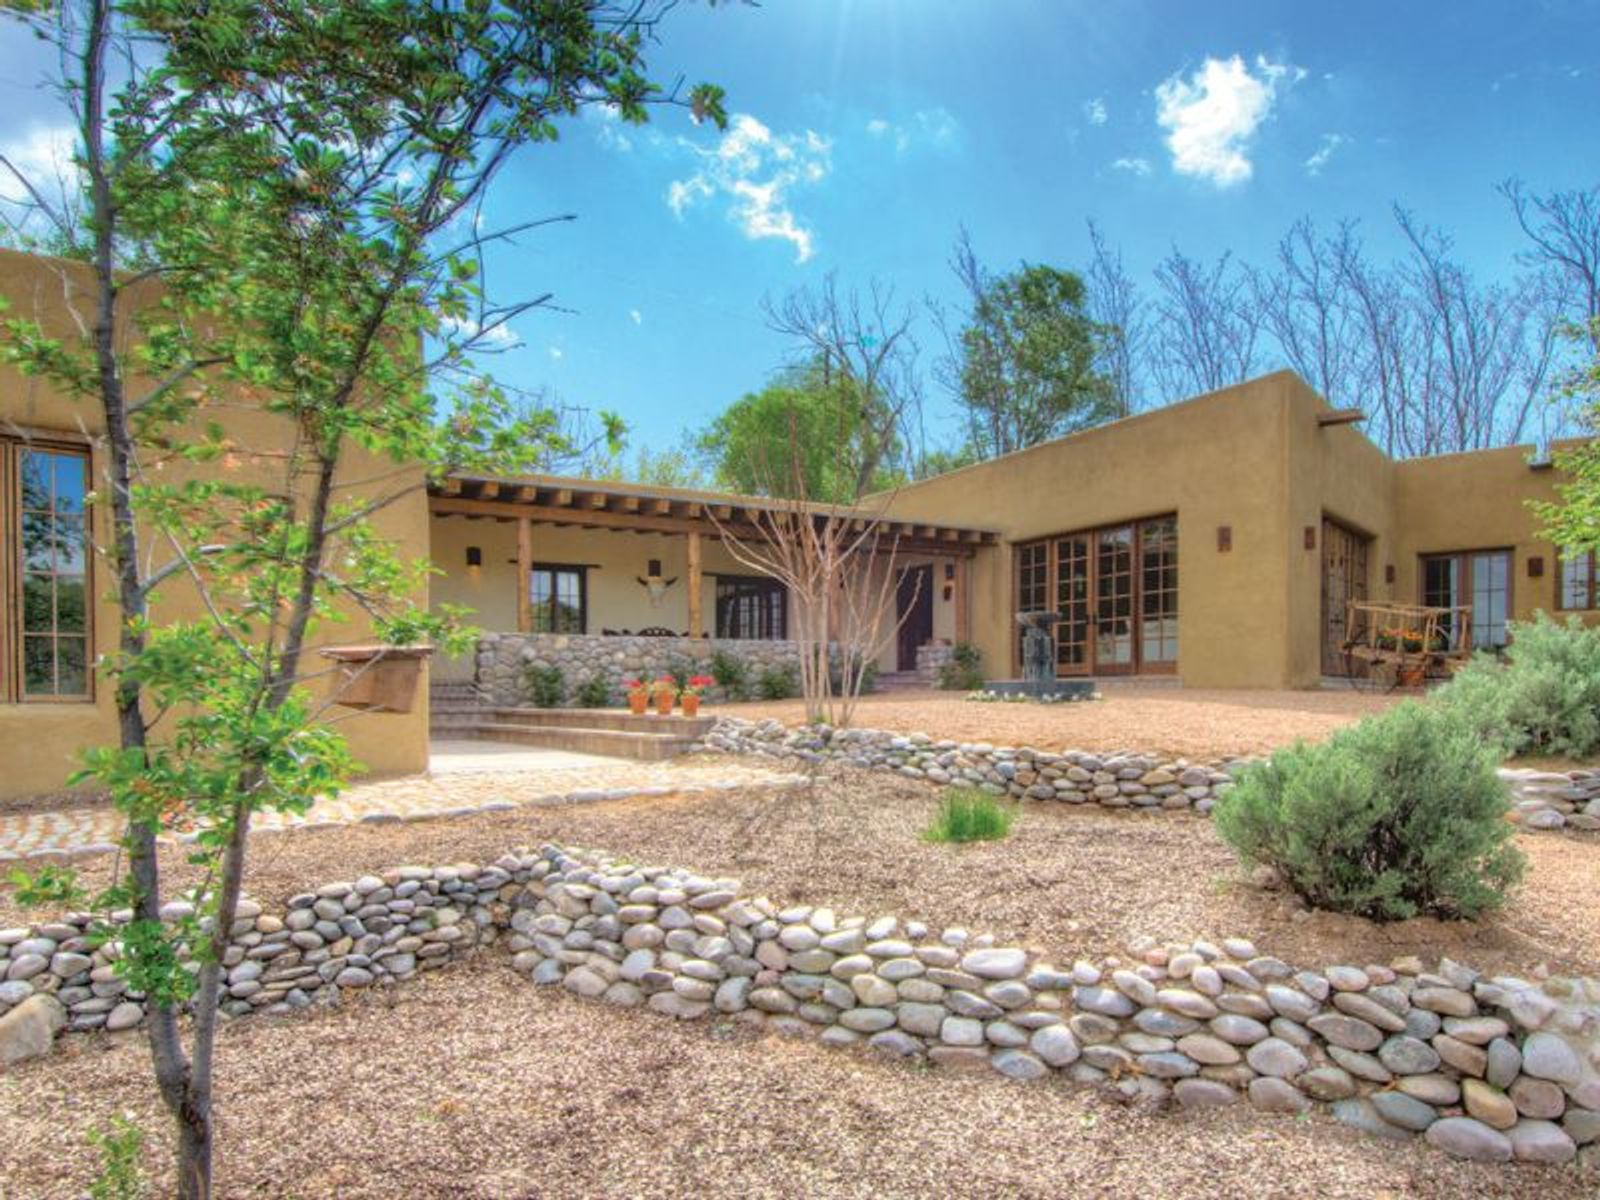 56 Camino Chupadero, Santa Fe NM Single Family Home - Santa Fe Real Estate